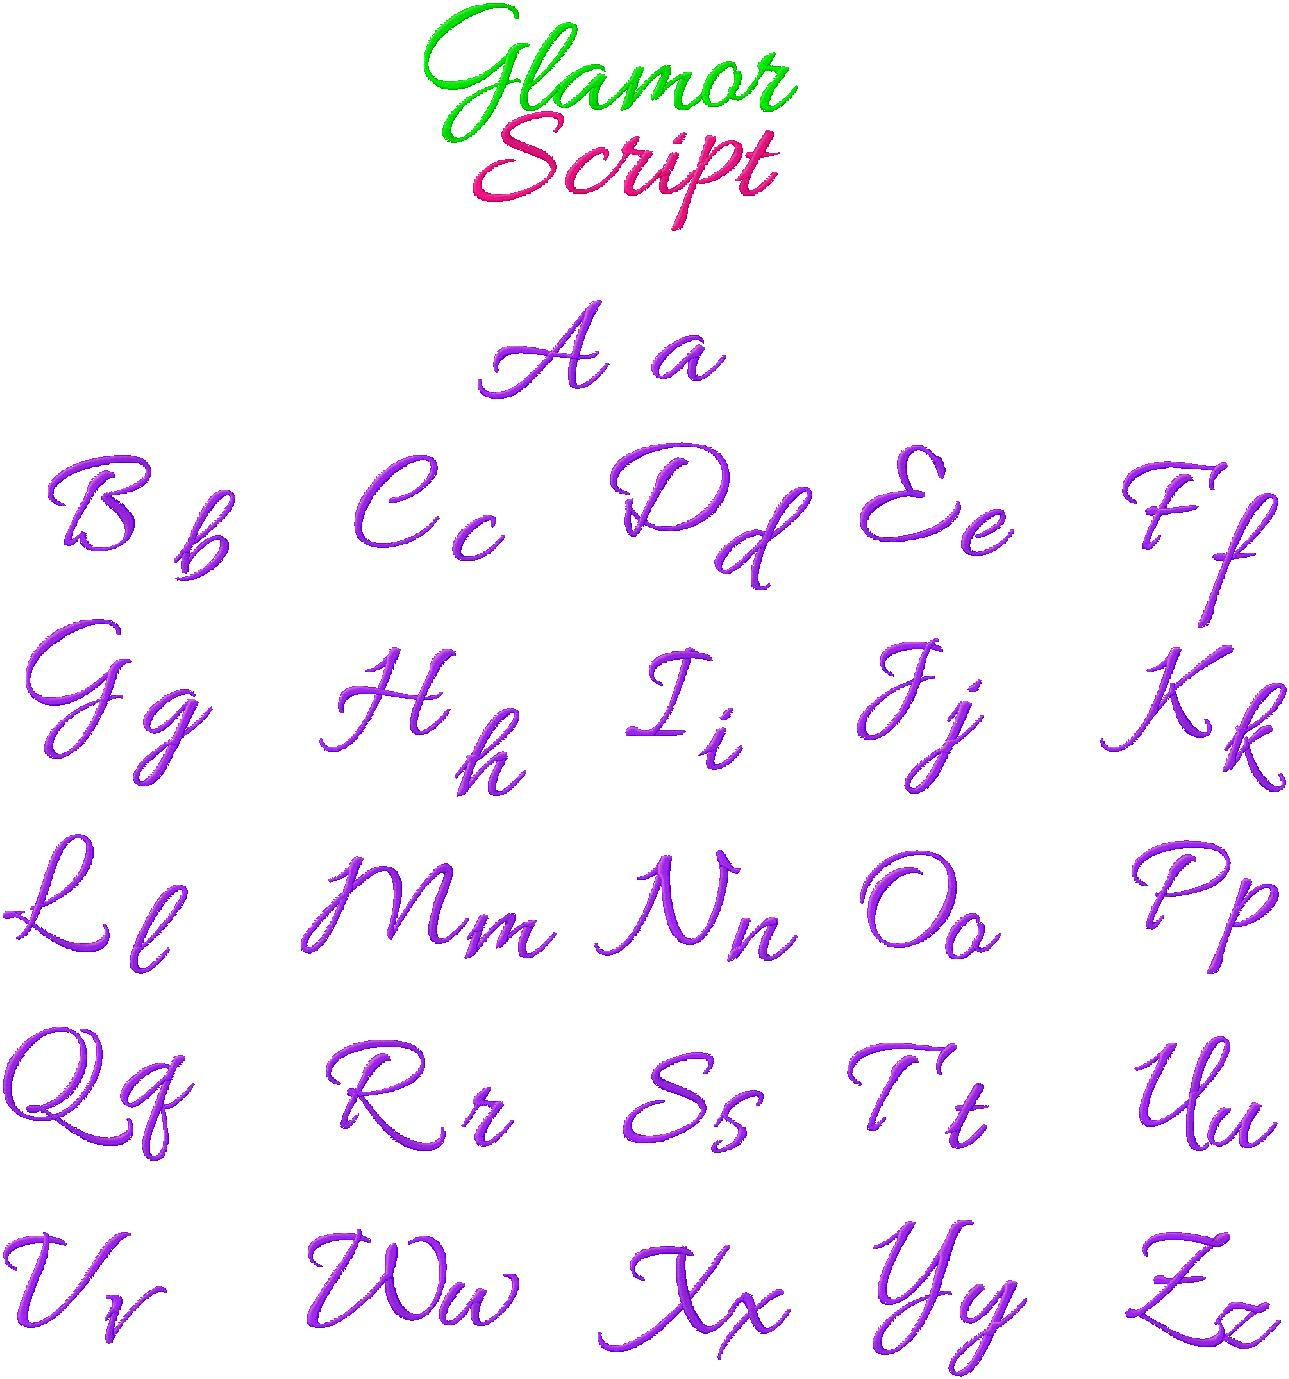 Free Cursive Embroidery Font Glamour Script – Daily Embroidery